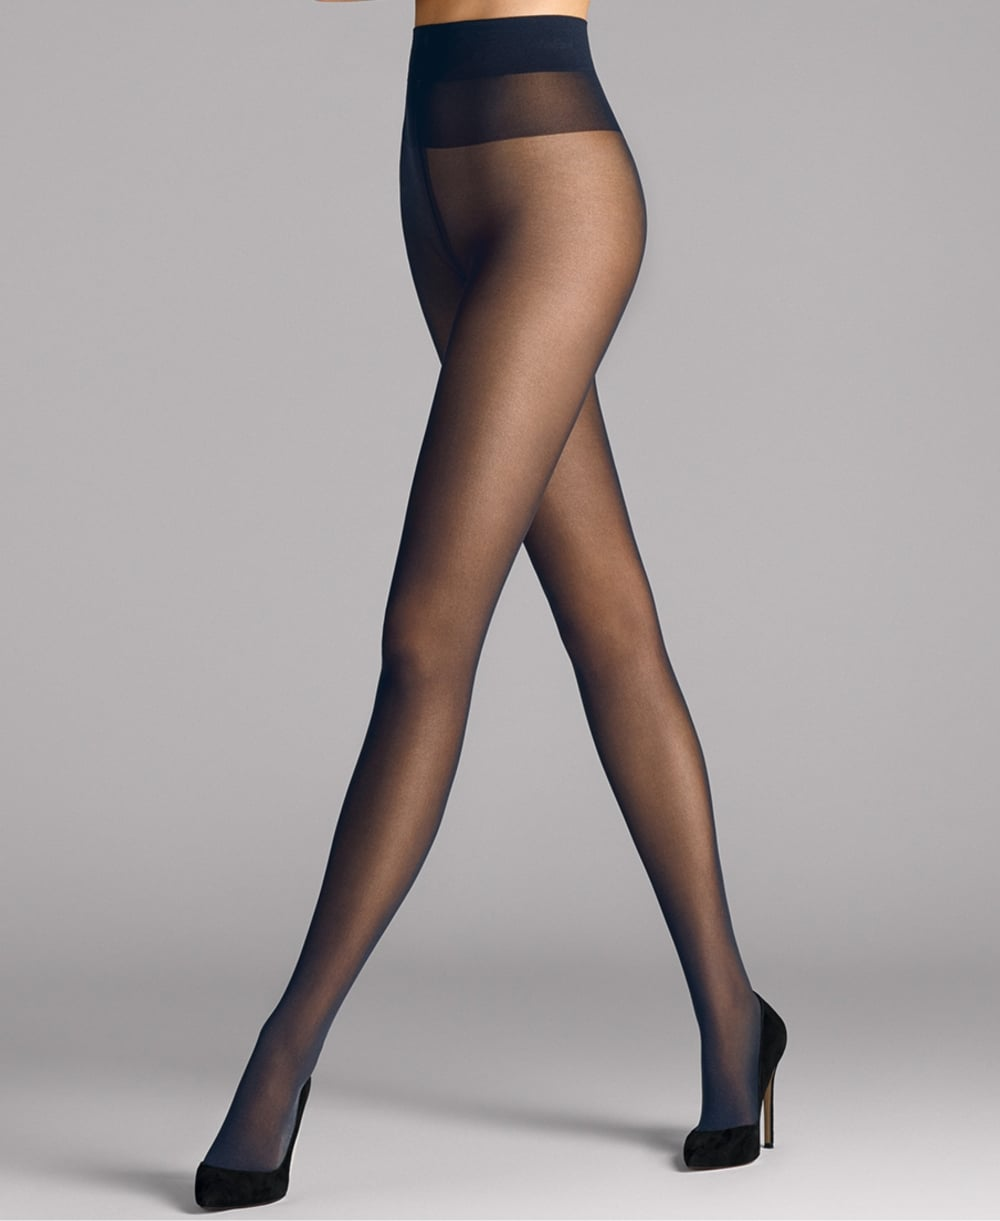 Wolford mens pantyhose apologise